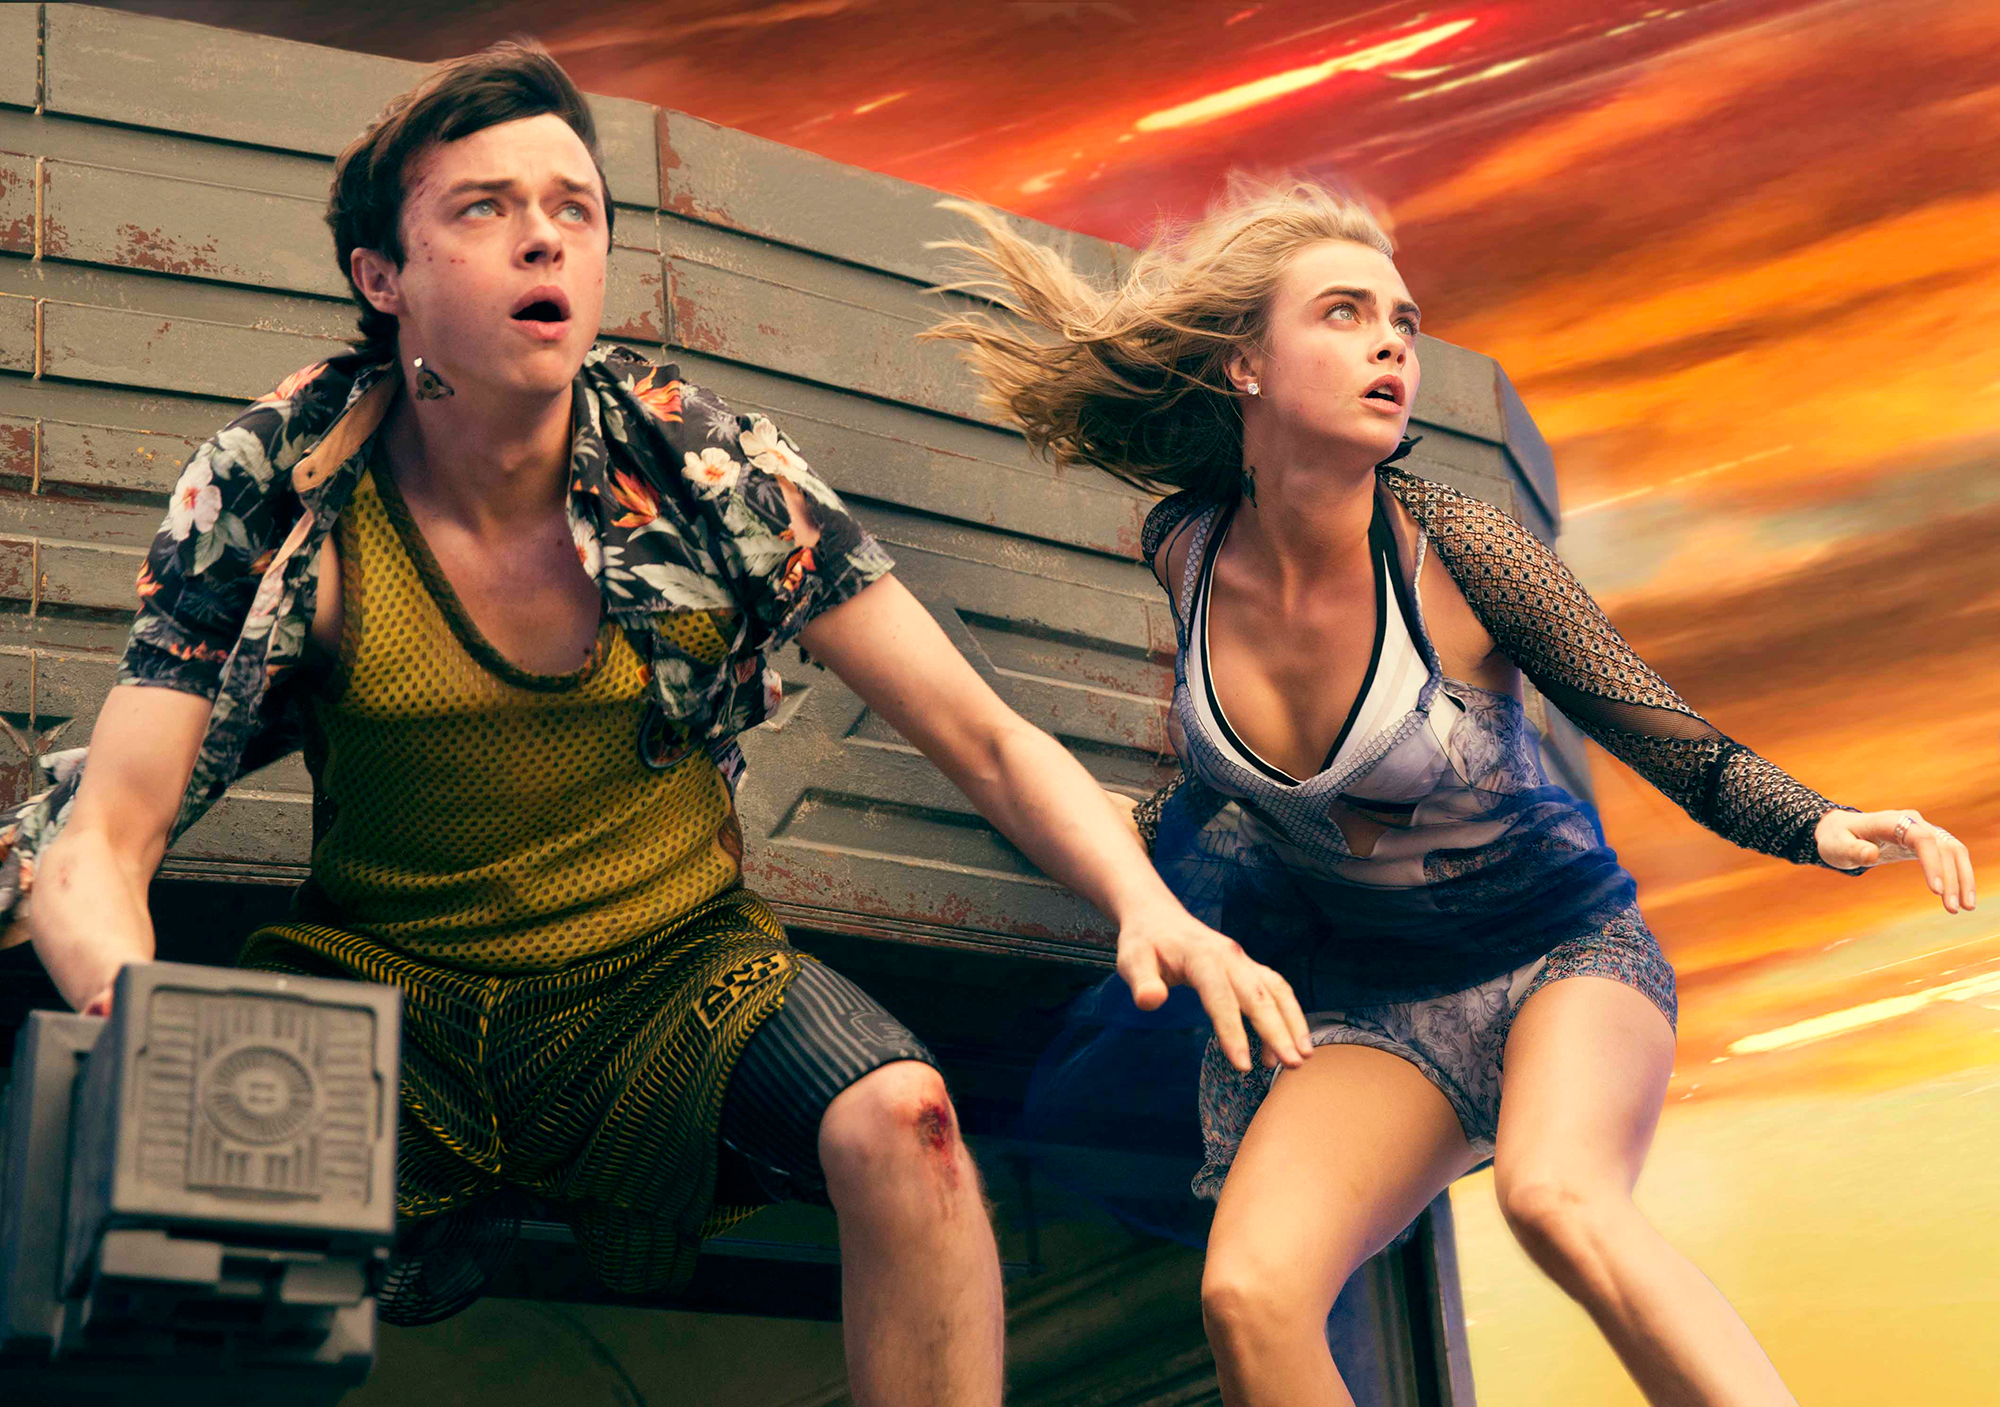 Lost in space: DeHaan and Delevingne, intergalactic